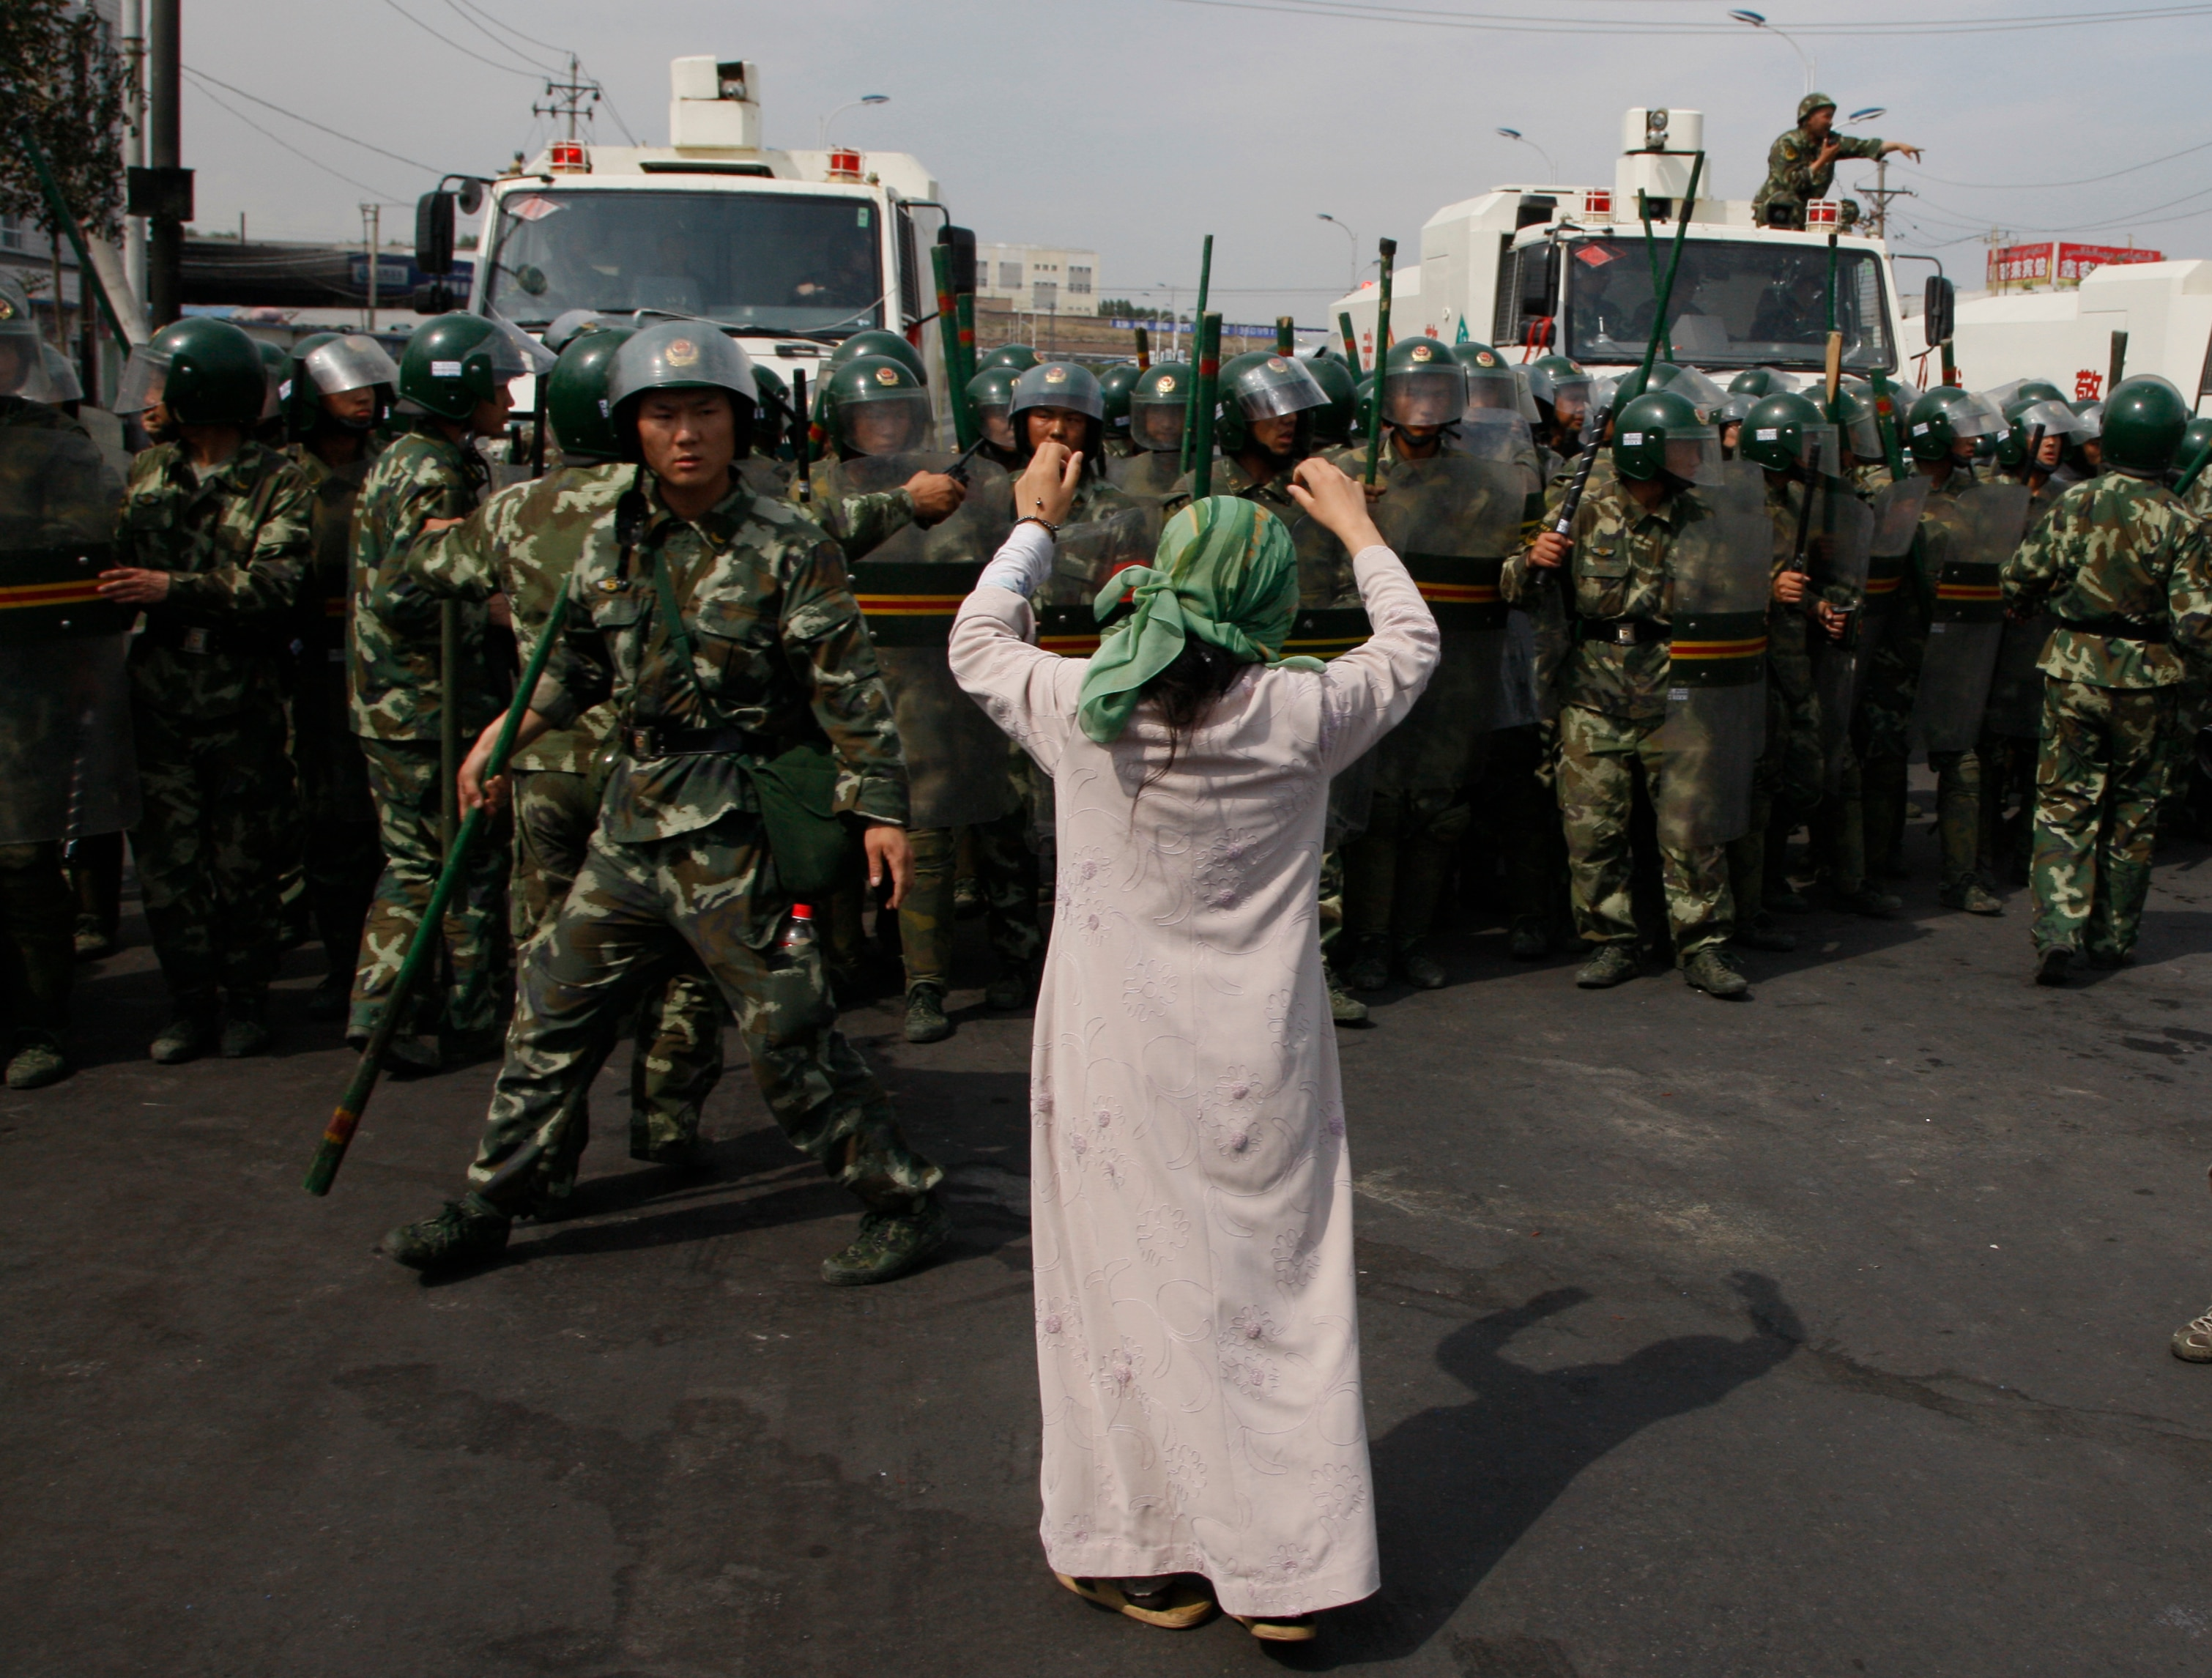 Saudi Arabia and Russian Federation among 37 states backing China's Xinjiang policy